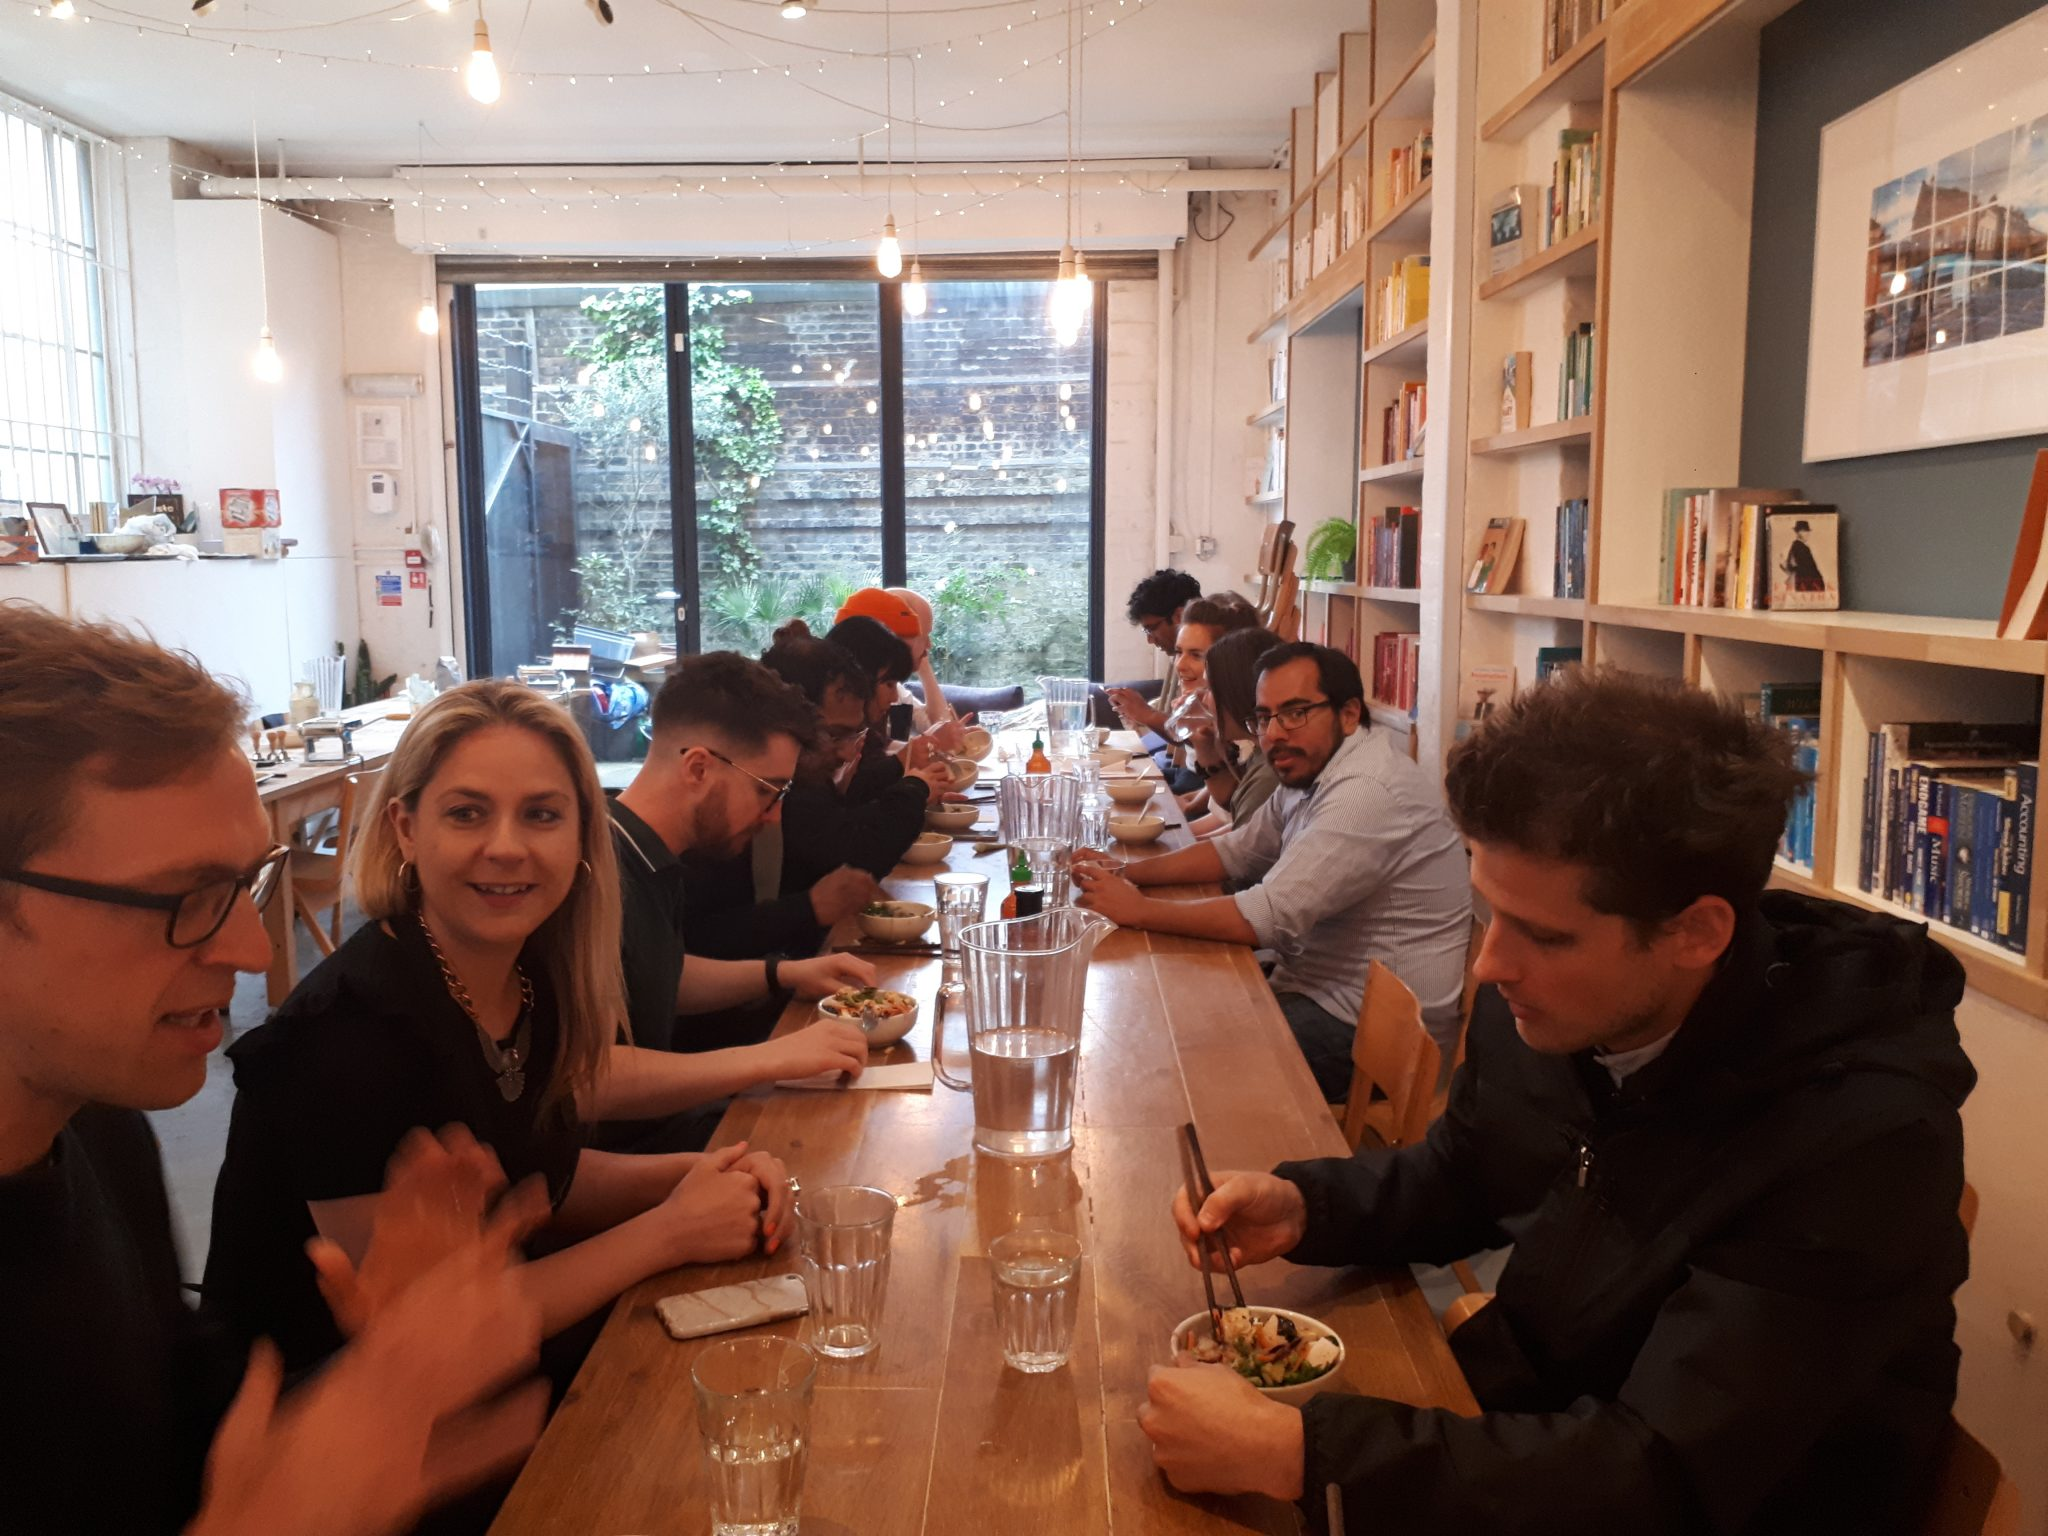 Photo of Roli's team at lunch (Corey Harrower is front right).